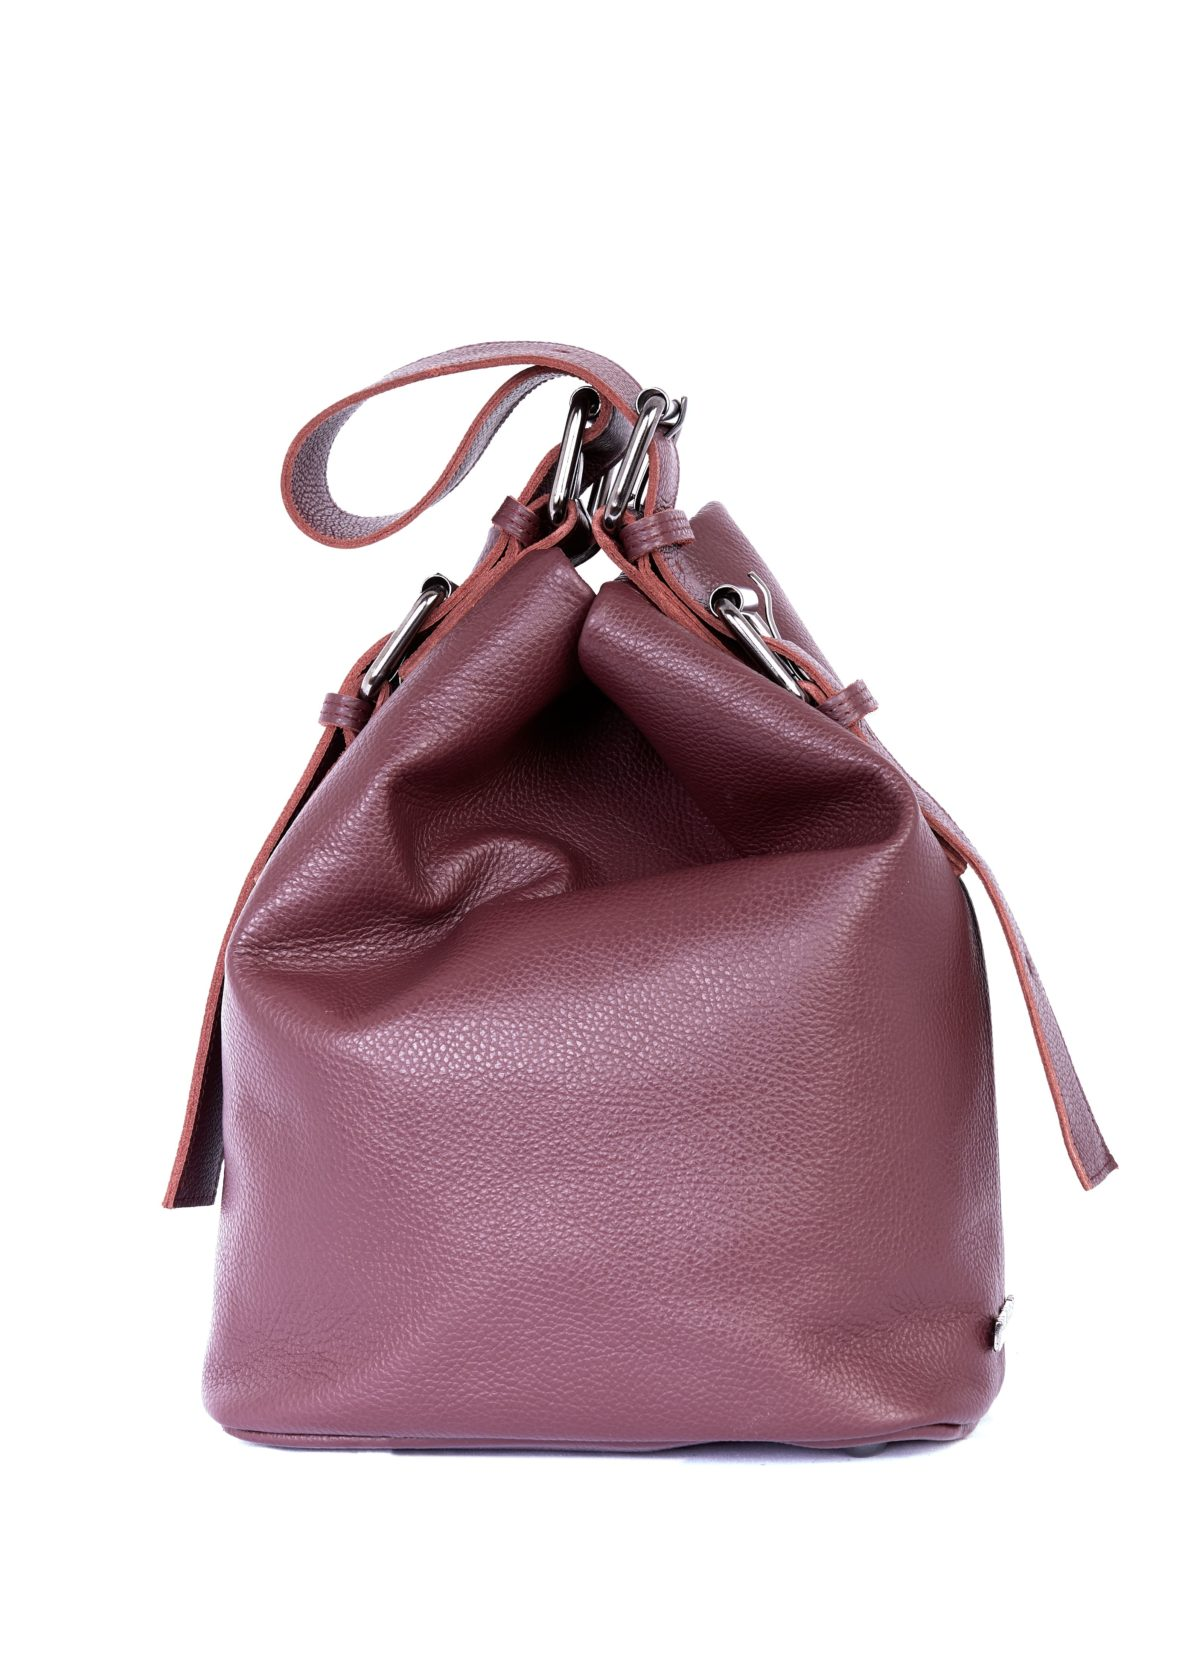 Day to Evening Pouch Bag L Burgundy | Elena Athanasiou Bags | Not The Ordinary FW21 Collection